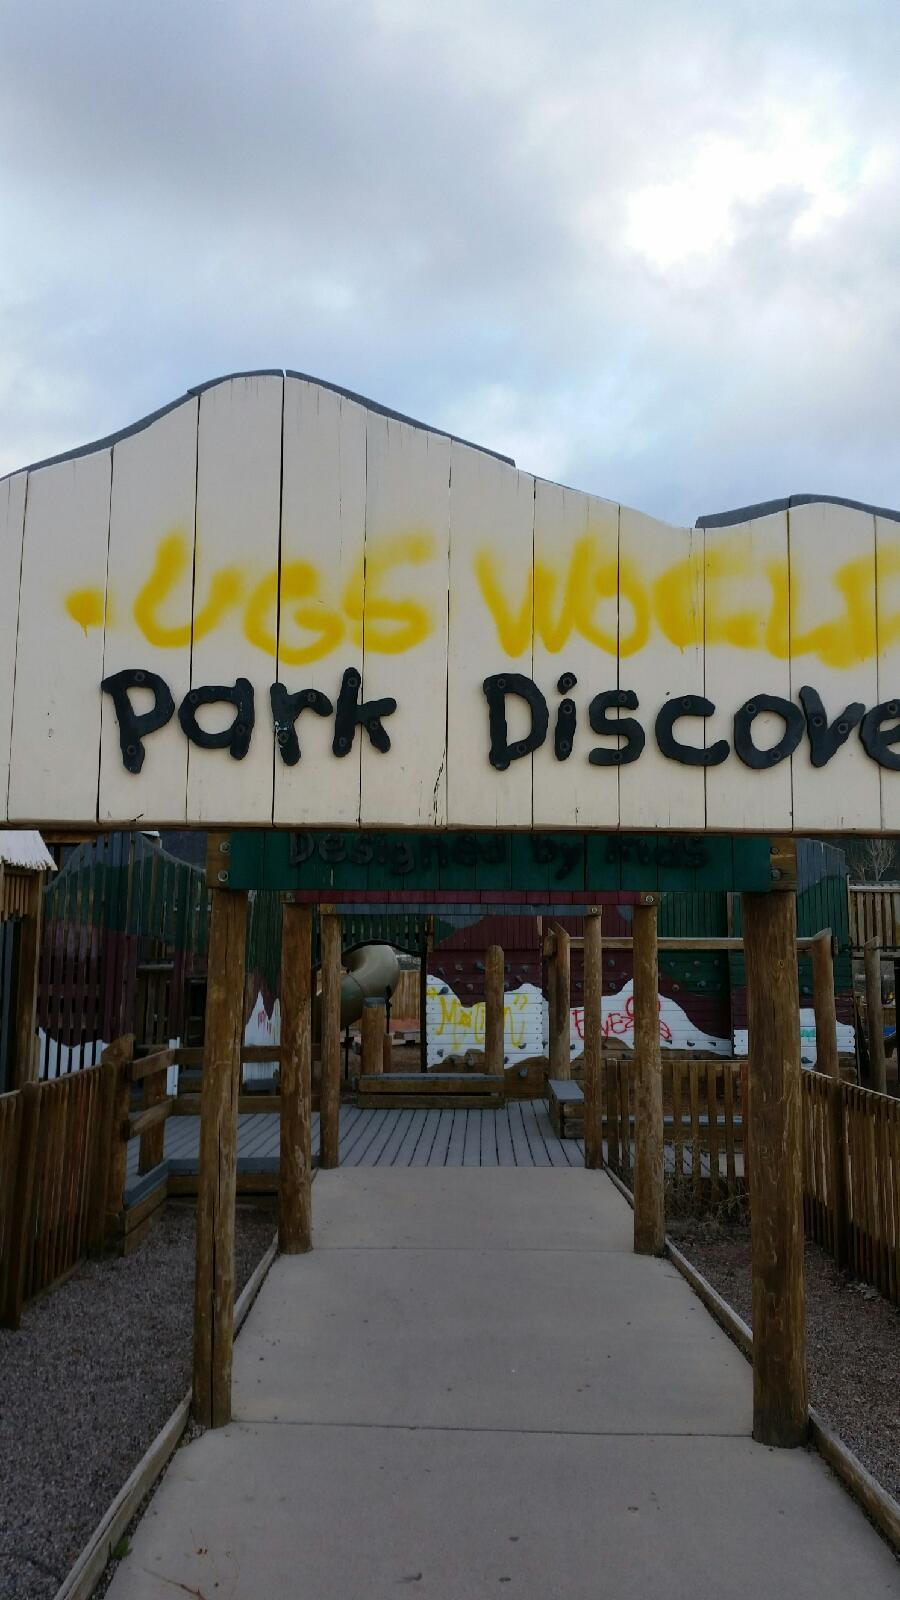 Vandalism at Park Discovery, Cedar City, Utah, April 16, 2016 | Photo by Liz Okeson with Cedar City Leisure Services, Cedar City News